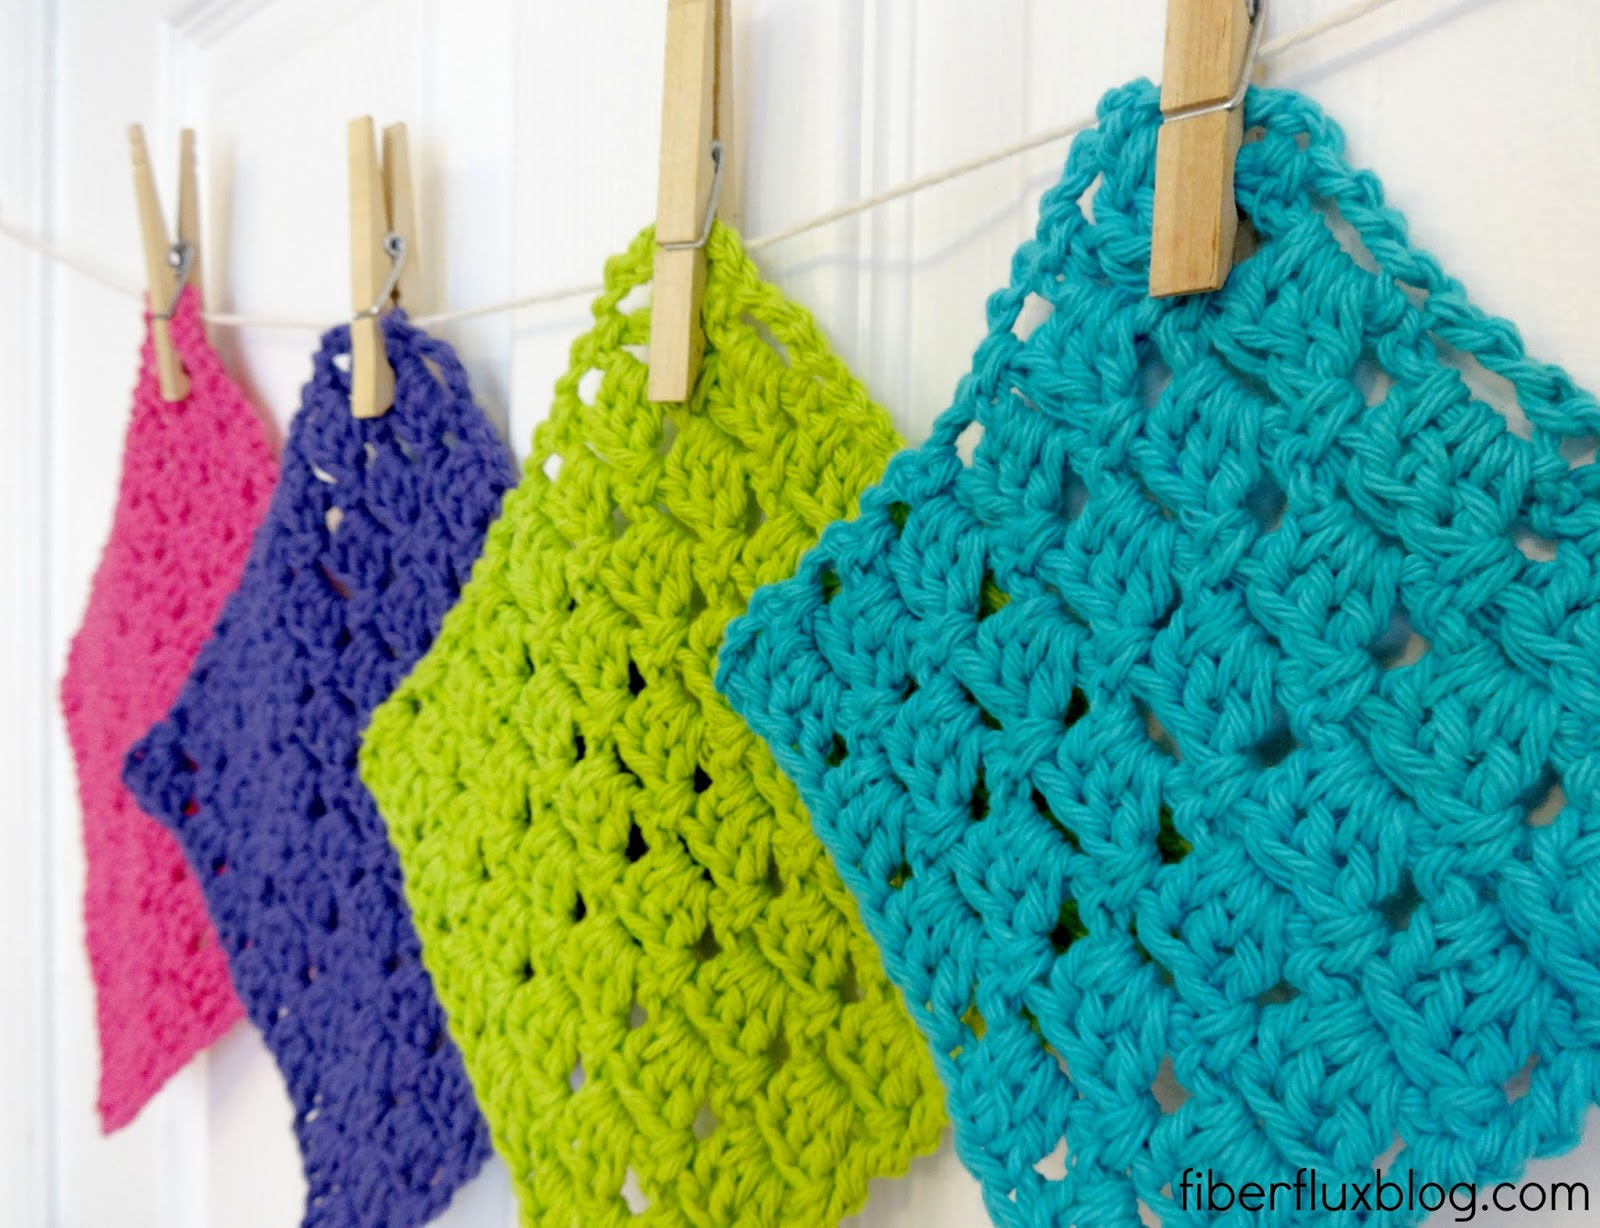 Crochet Dishcloths Free Patterns  Fiber Flux Free Crochet Patternsparkling Clean Dishcloths